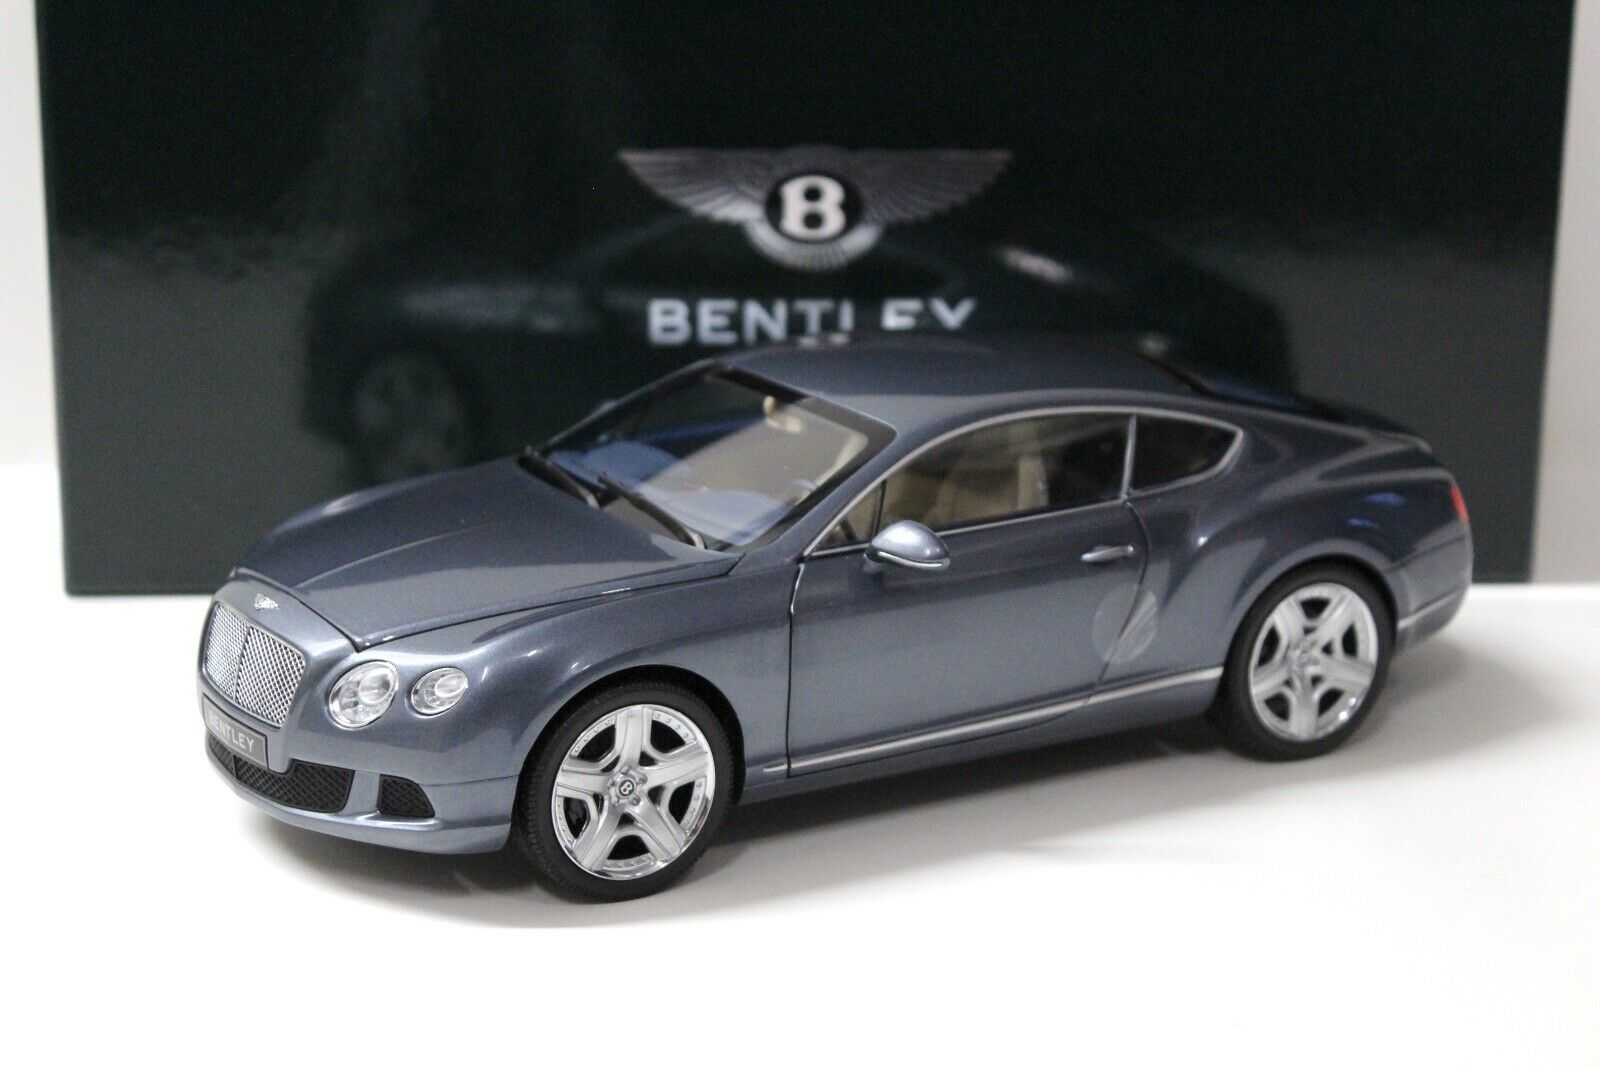 1 18 Minichamps Bentley Continental GT 2011 grey DEALER NEW bei PREMIUM-MODELCAR